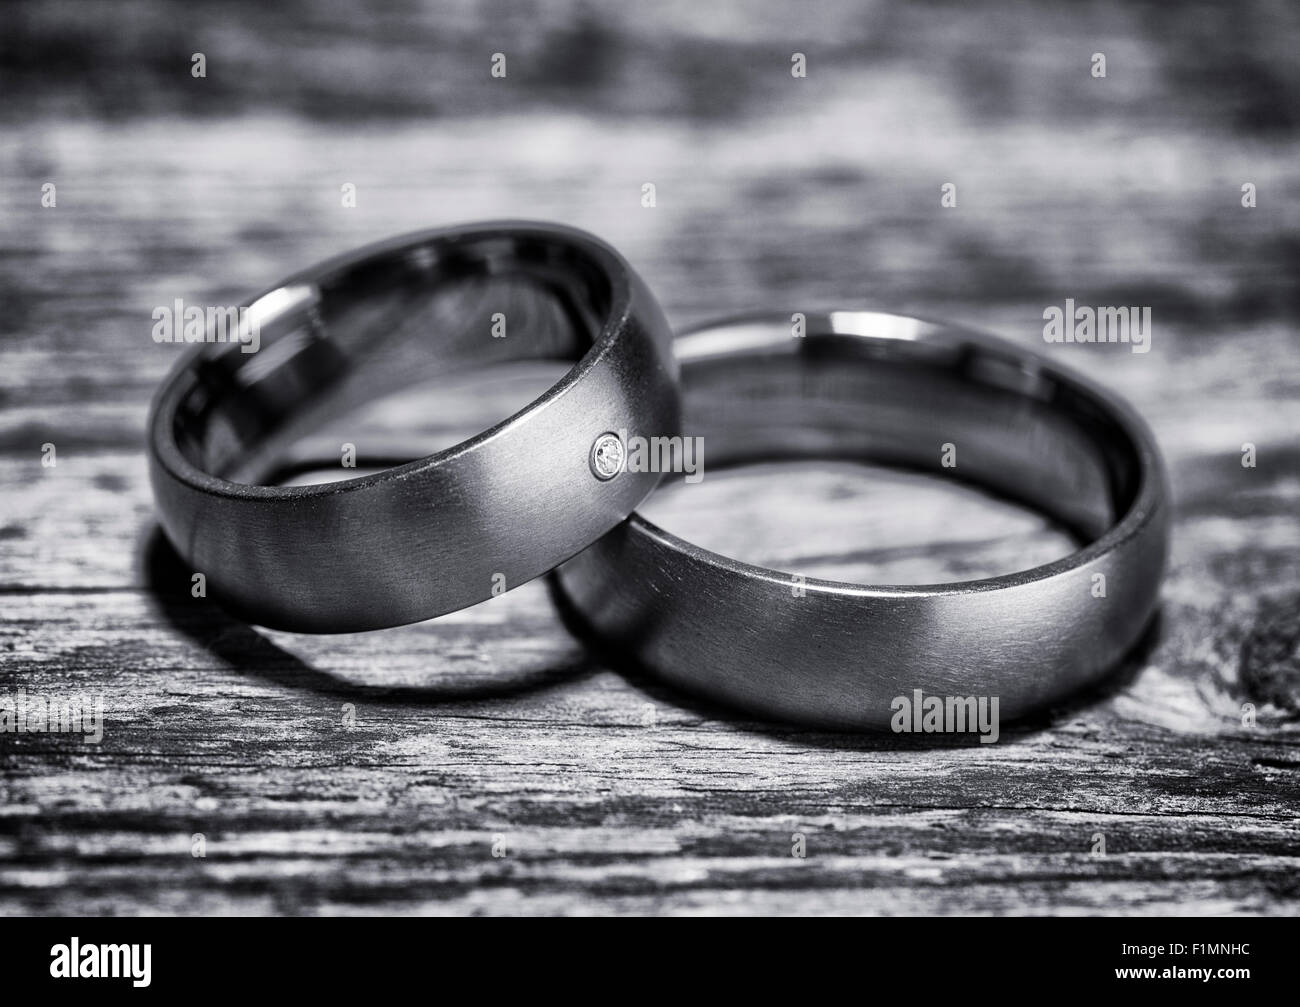 Pair Of Wedding Rings On Rustic Wooden Background Black And White Processing